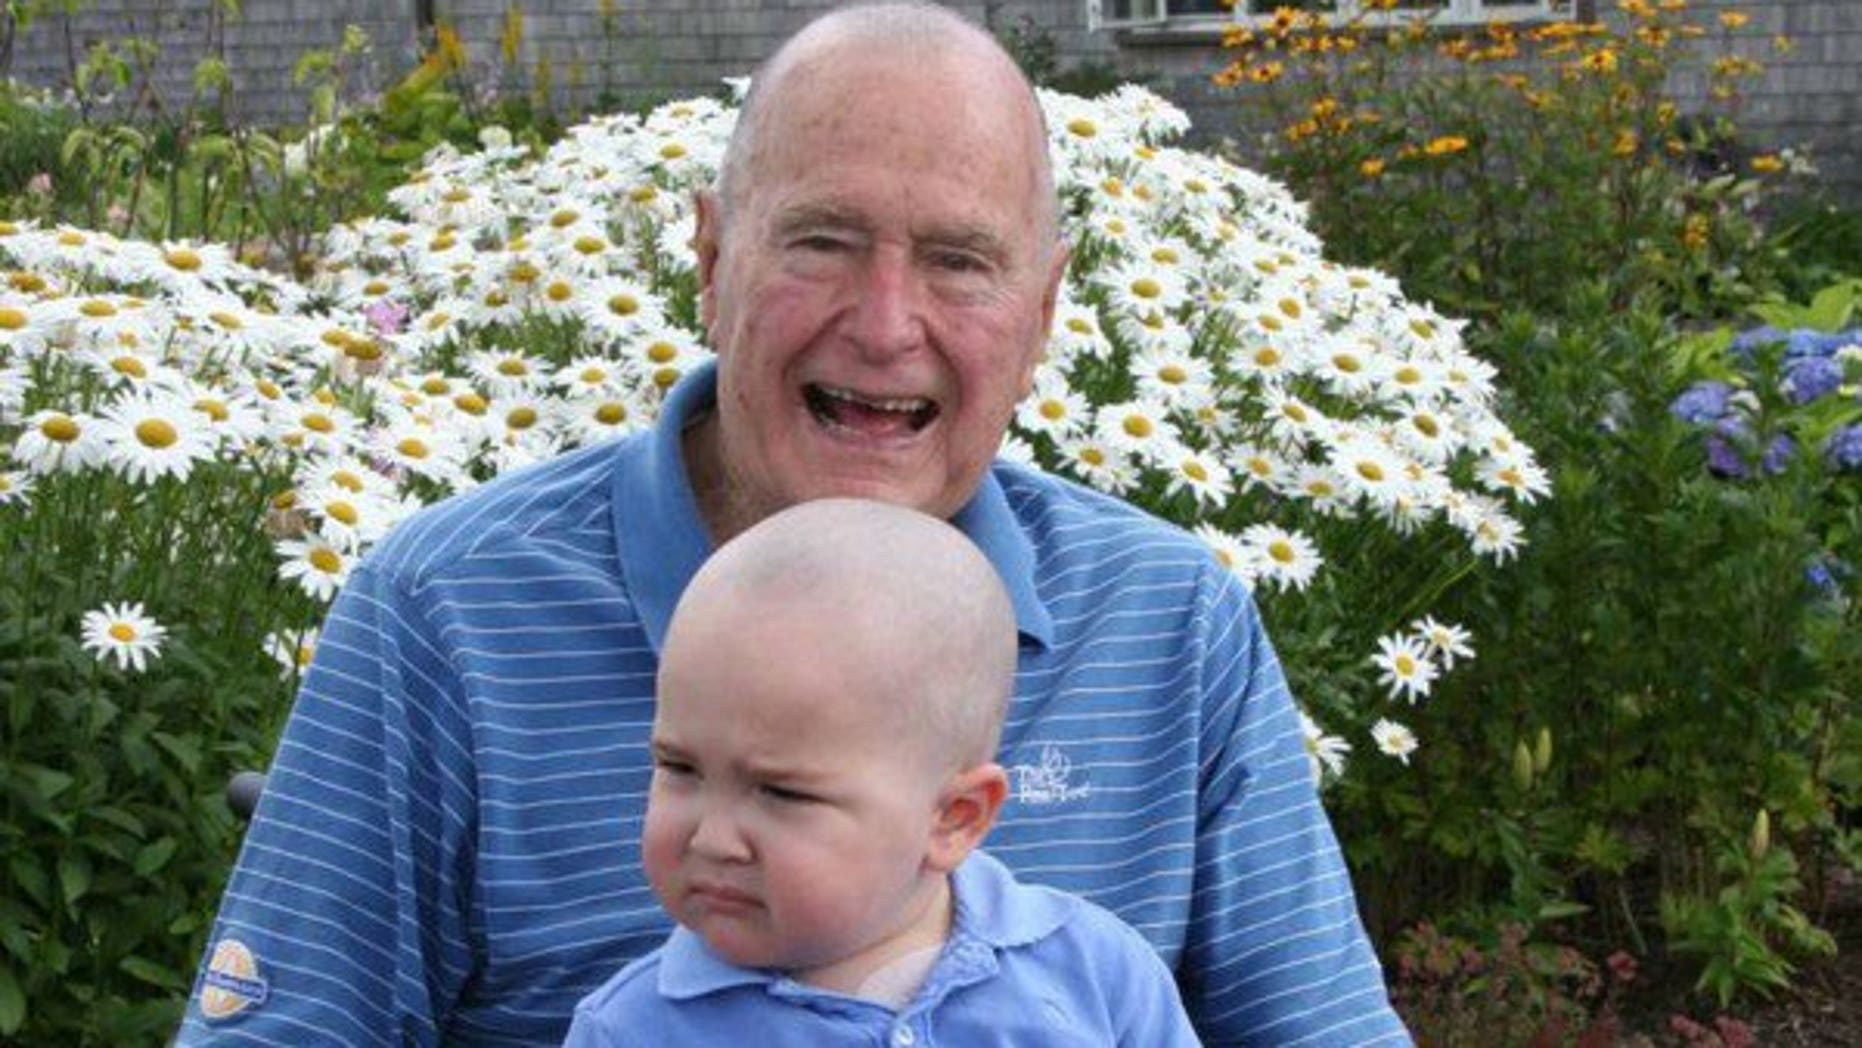 Former President George H.W. Bush shaved his head in 2013 along with his Secret Service detail in solidarity with an agent's 2-year-old son who was diagnosed with leukemia.